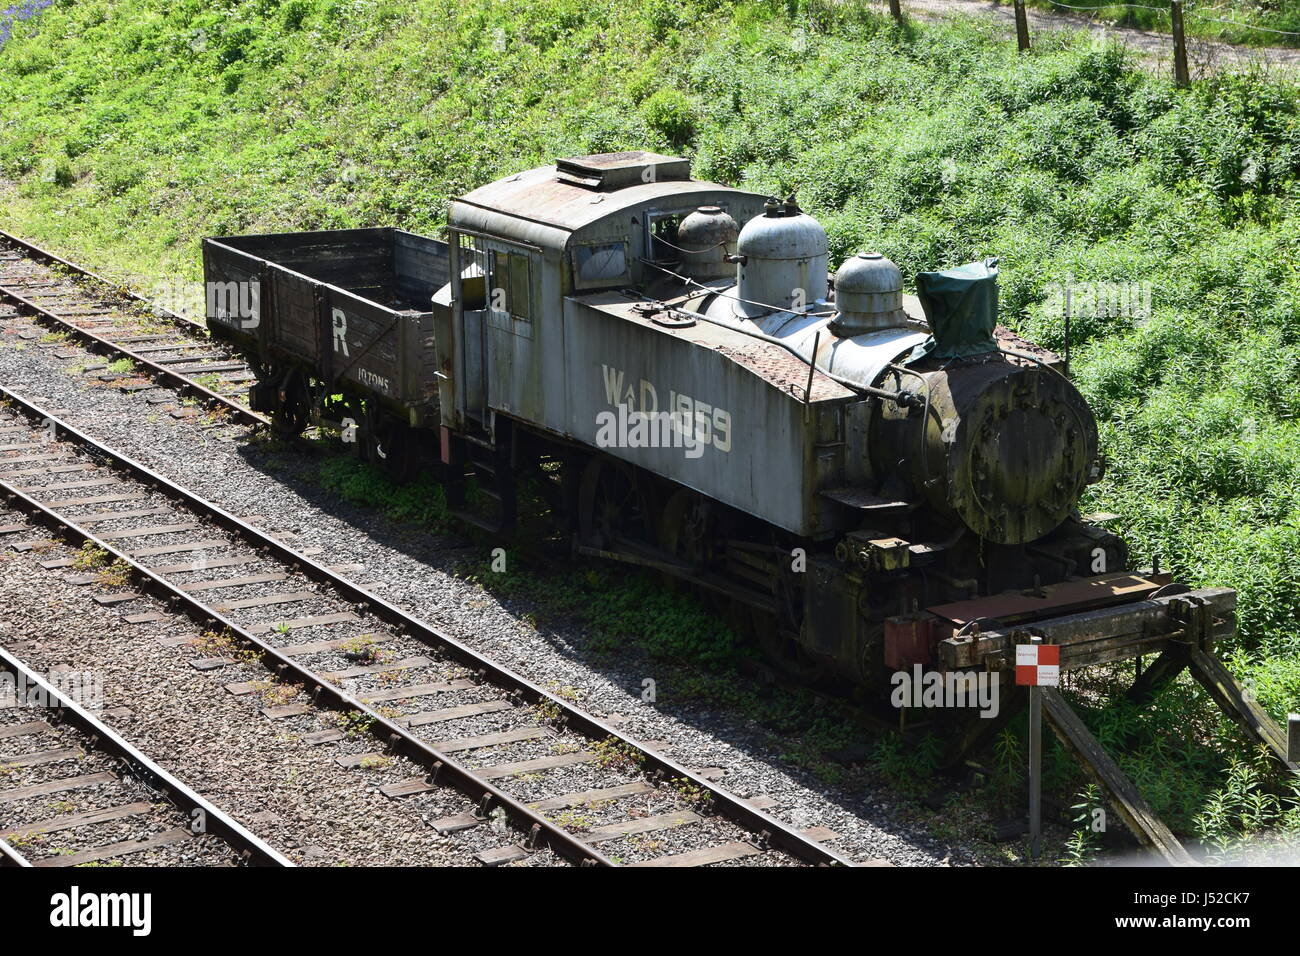 WD 1959, USA 0-6-0T tank engine at Bluebell Railway with SR plank wagon - Stock Image